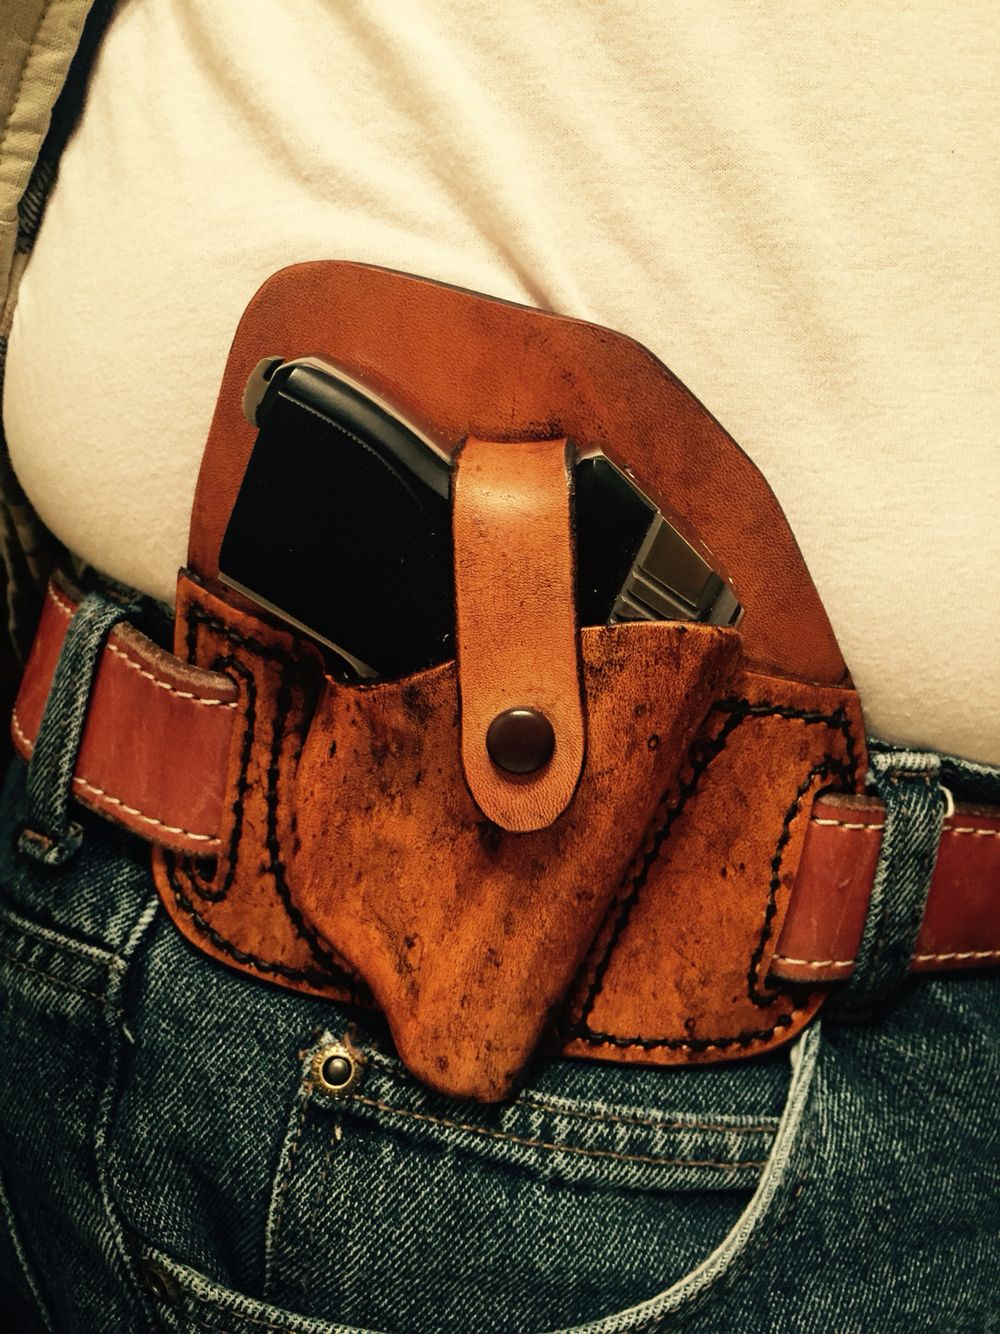 Holster by Mike Ragonese for Seecamp 32 Antique finish on